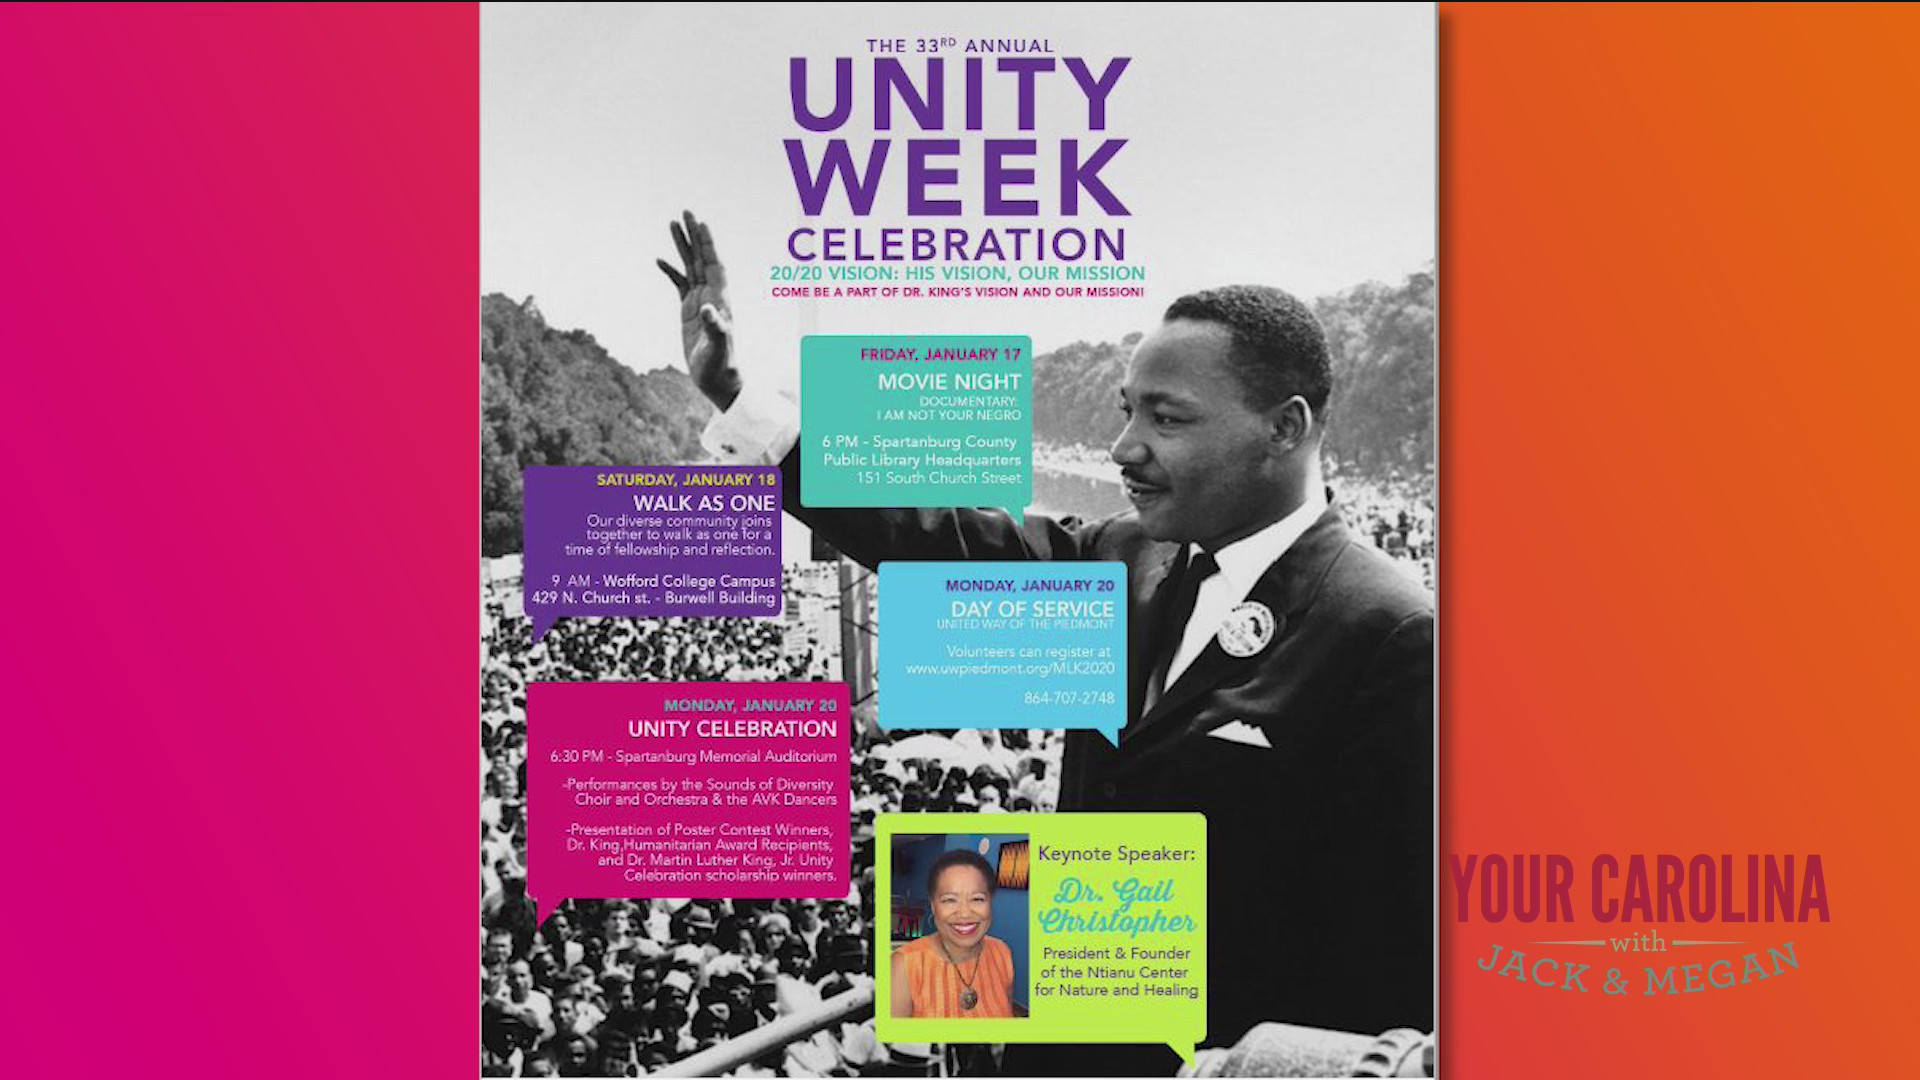 The 33rd Annual Dr. Martin Luther King, Jr. Unity Week Celebration